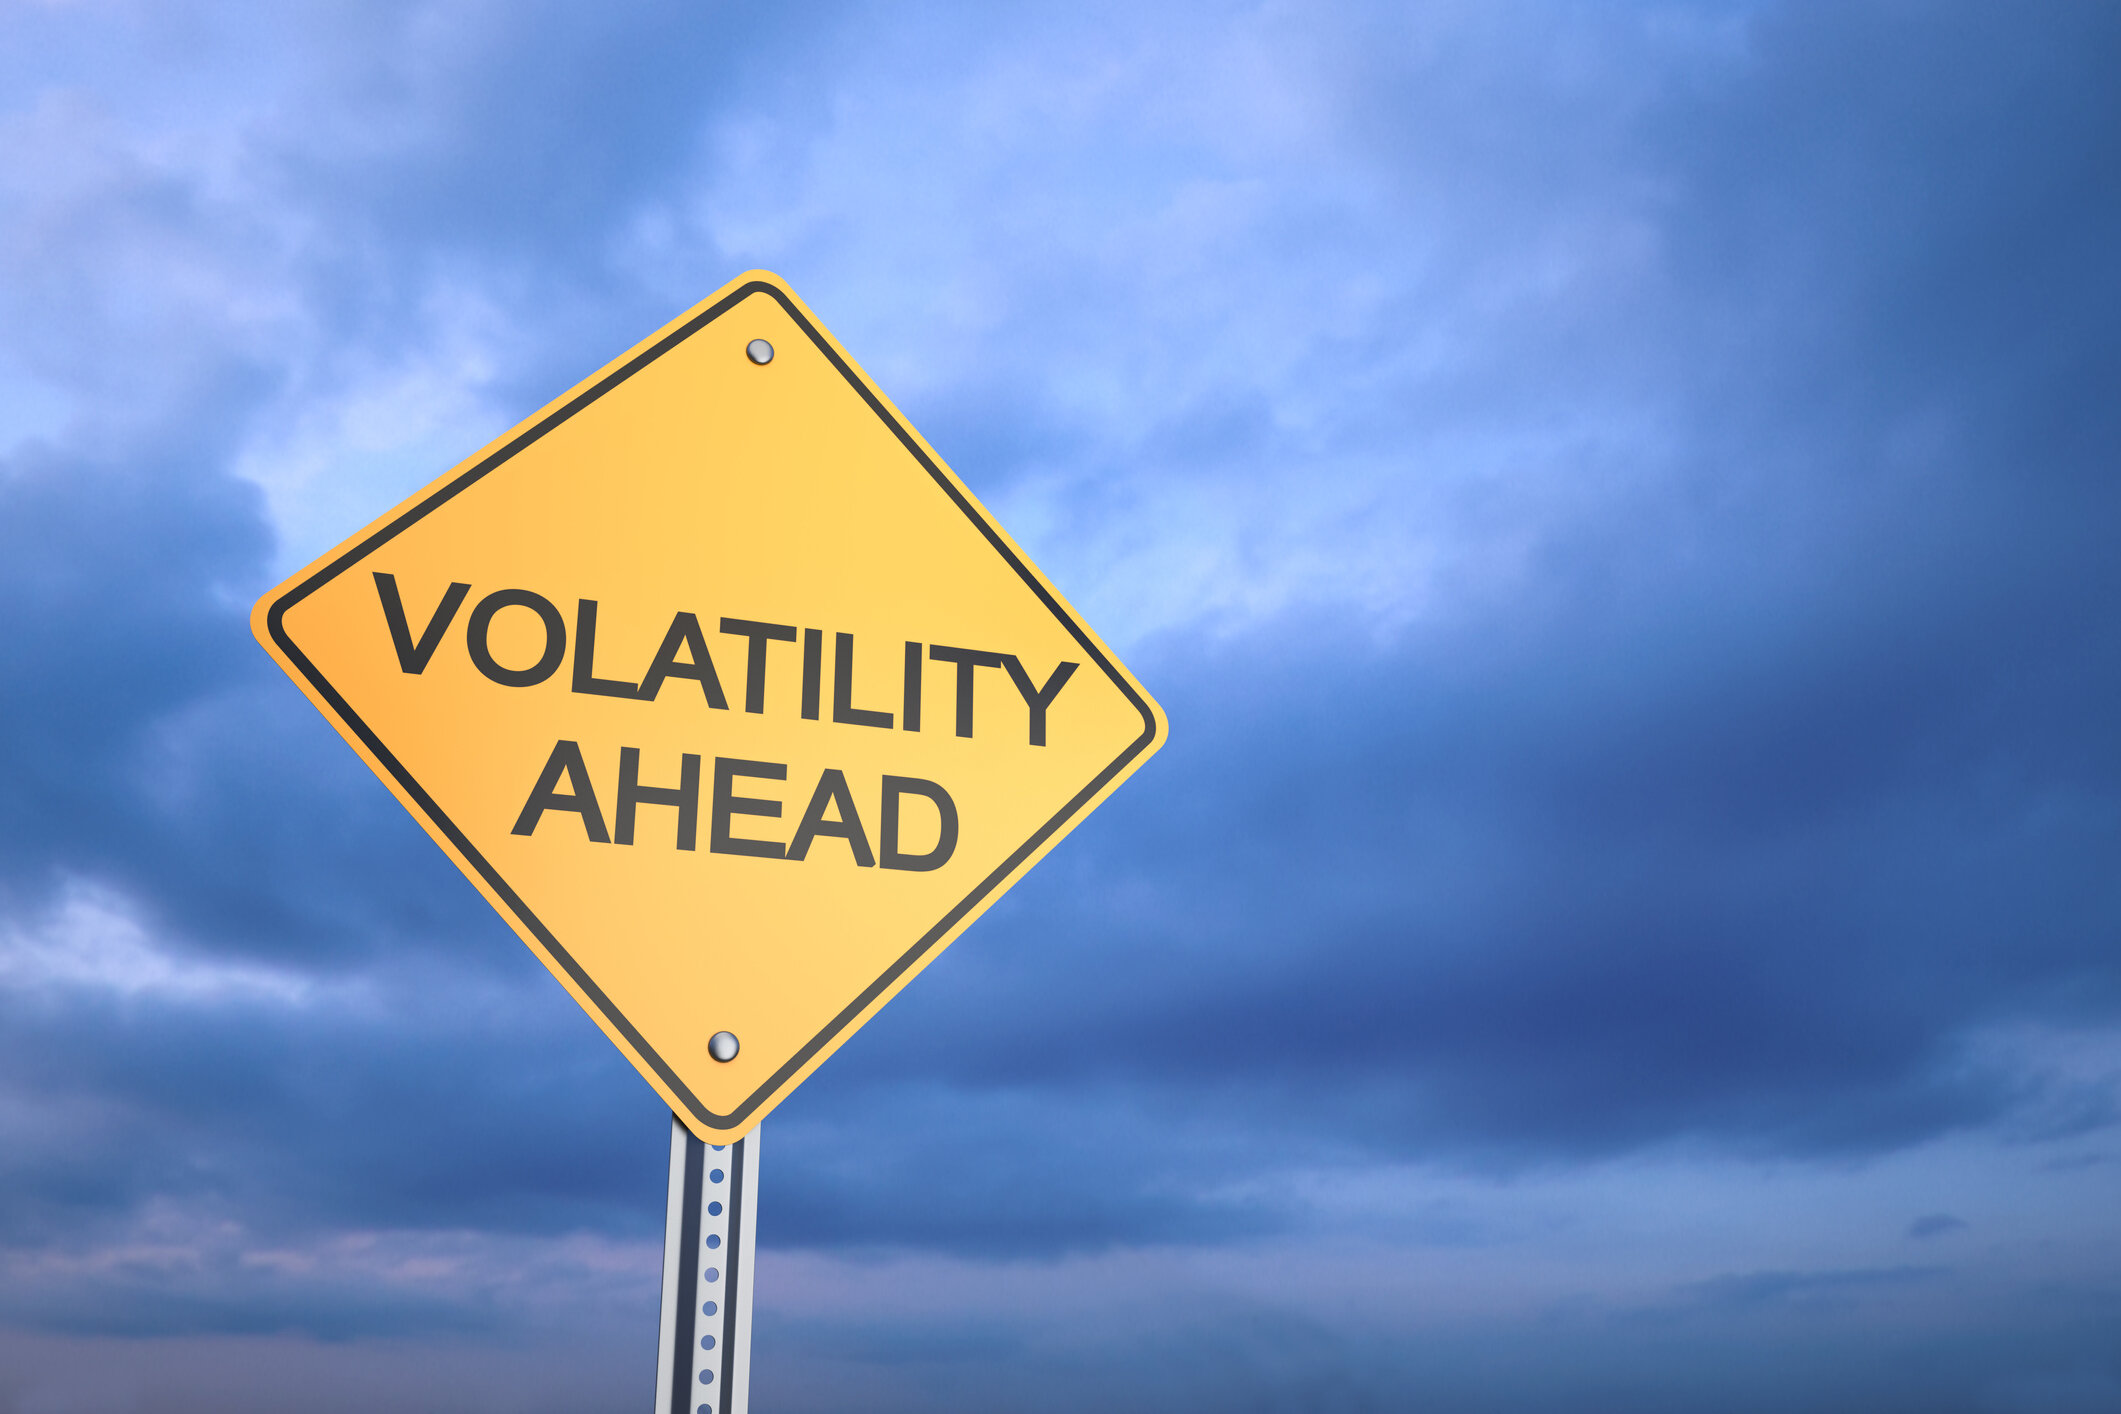 free risk analysis - Are you worried about how much value your account might decline in a market downturn? We offer a free risk assessment so you can learn how vulnerable you may be. Schedule a free risk assessment today.